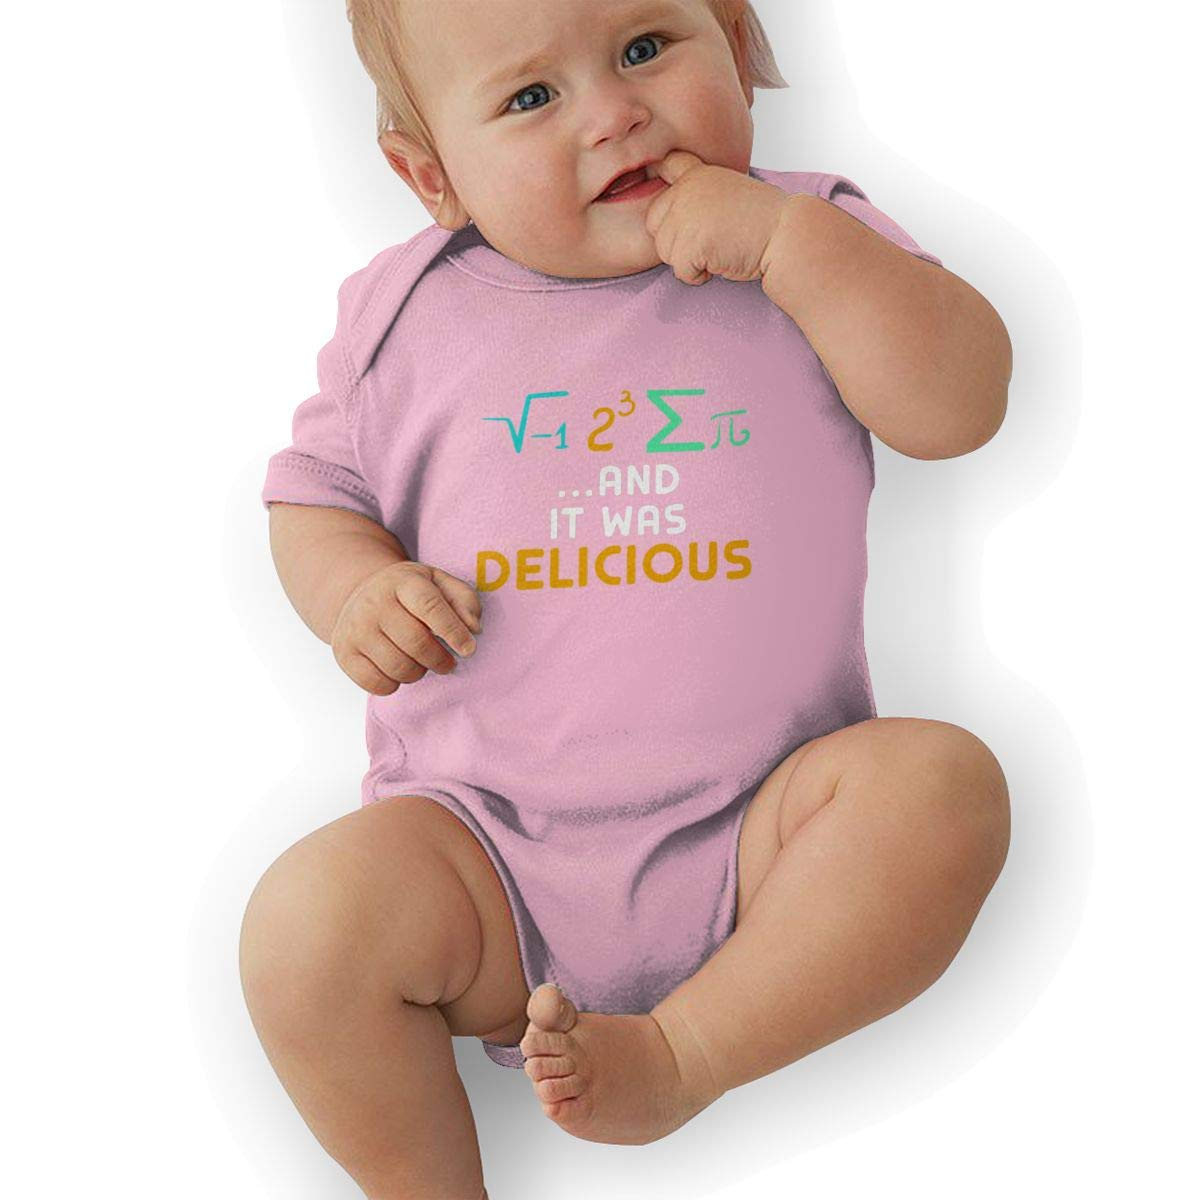 Infant Baby Girls Bodysuit Short-Sleeve Onesie I Ate Some Pie It was Delicious Print Jumpsuit Spring Pajamas